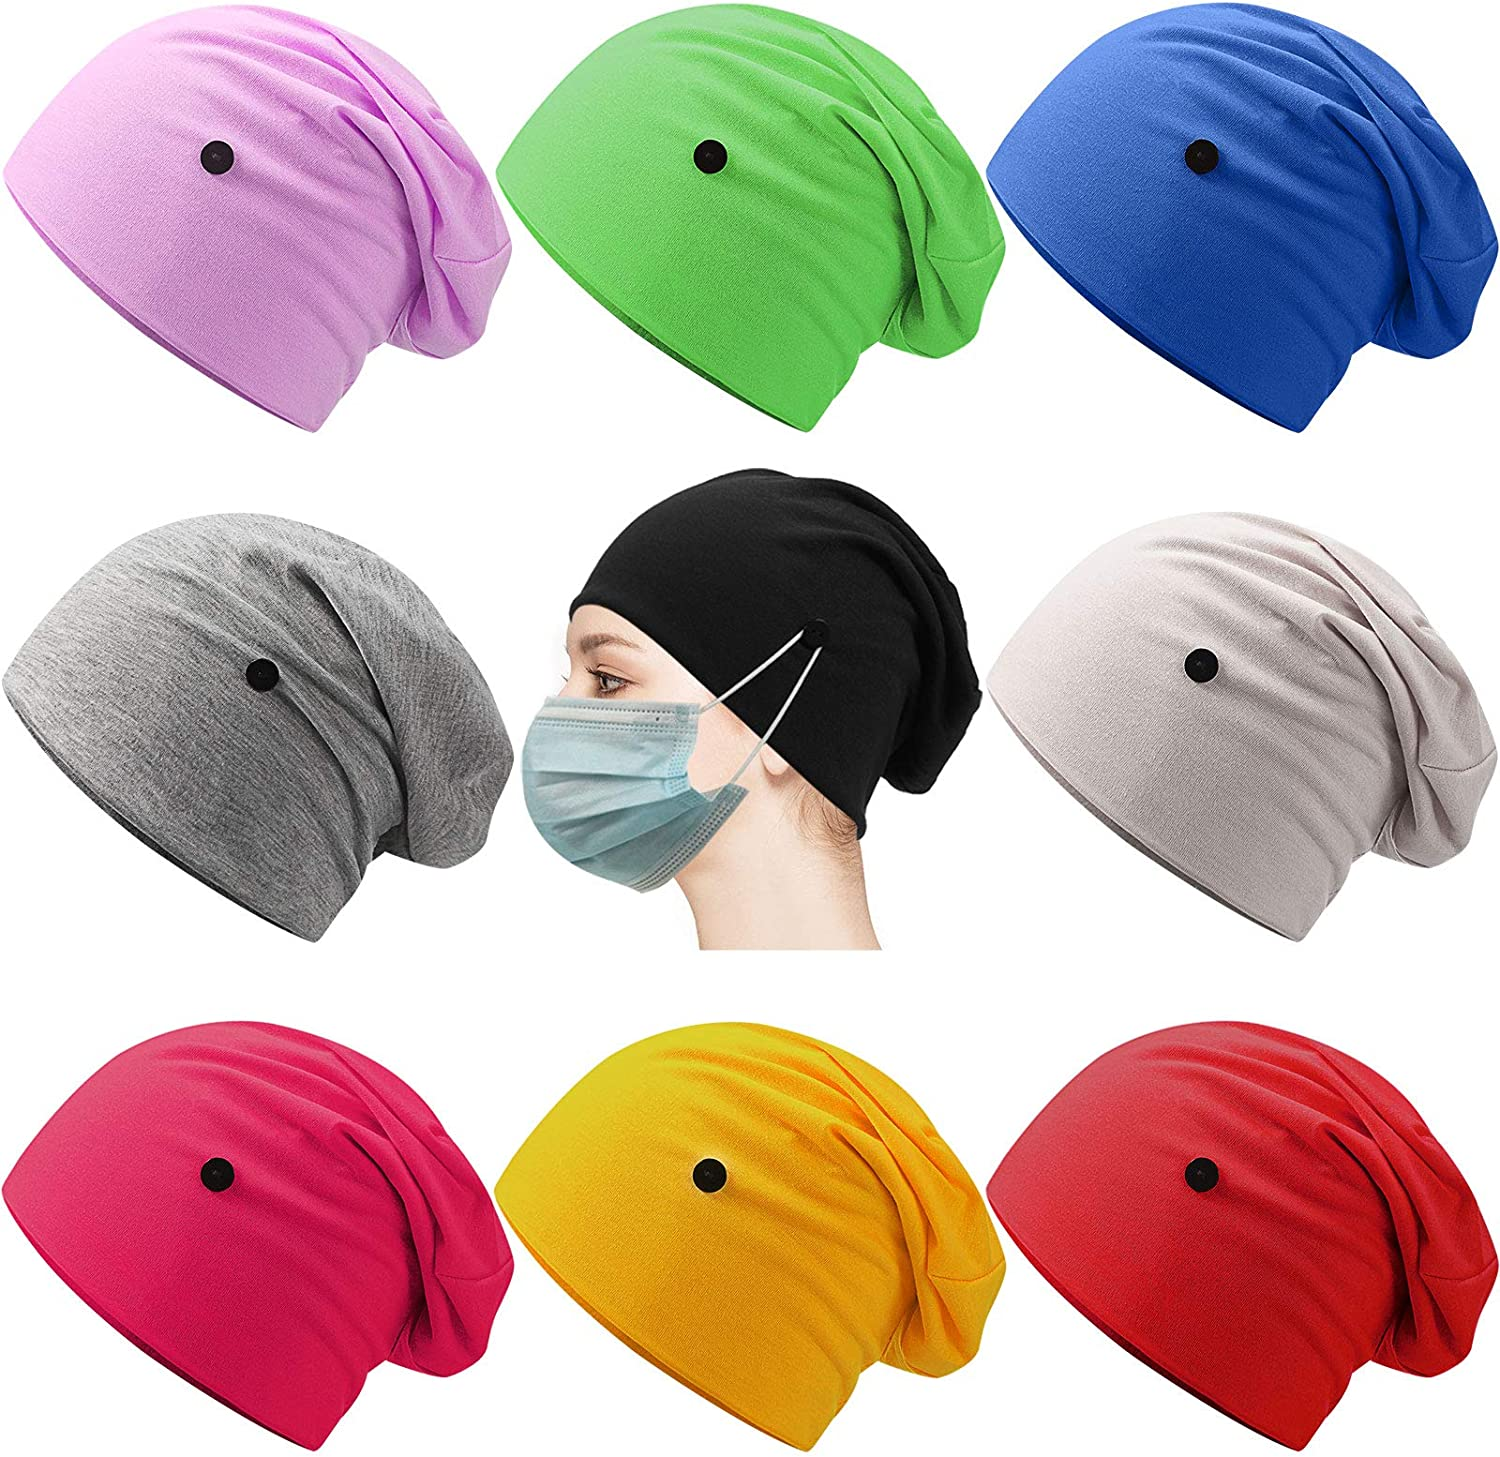 Geyoga 9 Pieces Slouchy Beanie Buttons Headwrap Bouffa Caps with Free shipping anywhere in the Houston Mall nation